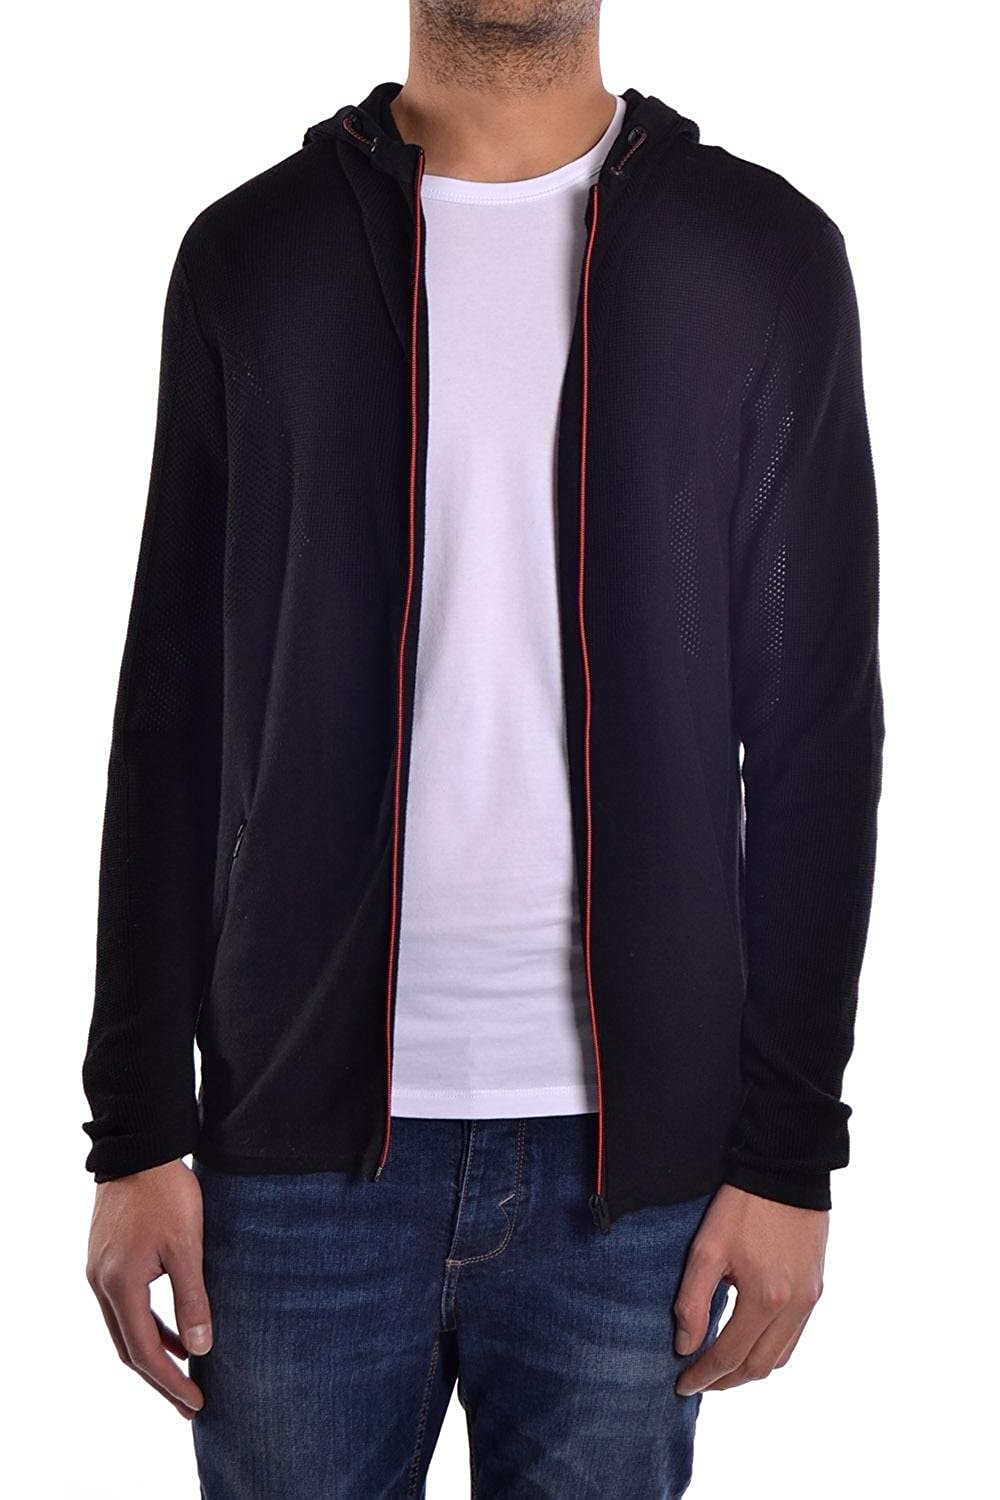 Jack & Jones Men's Cardigan